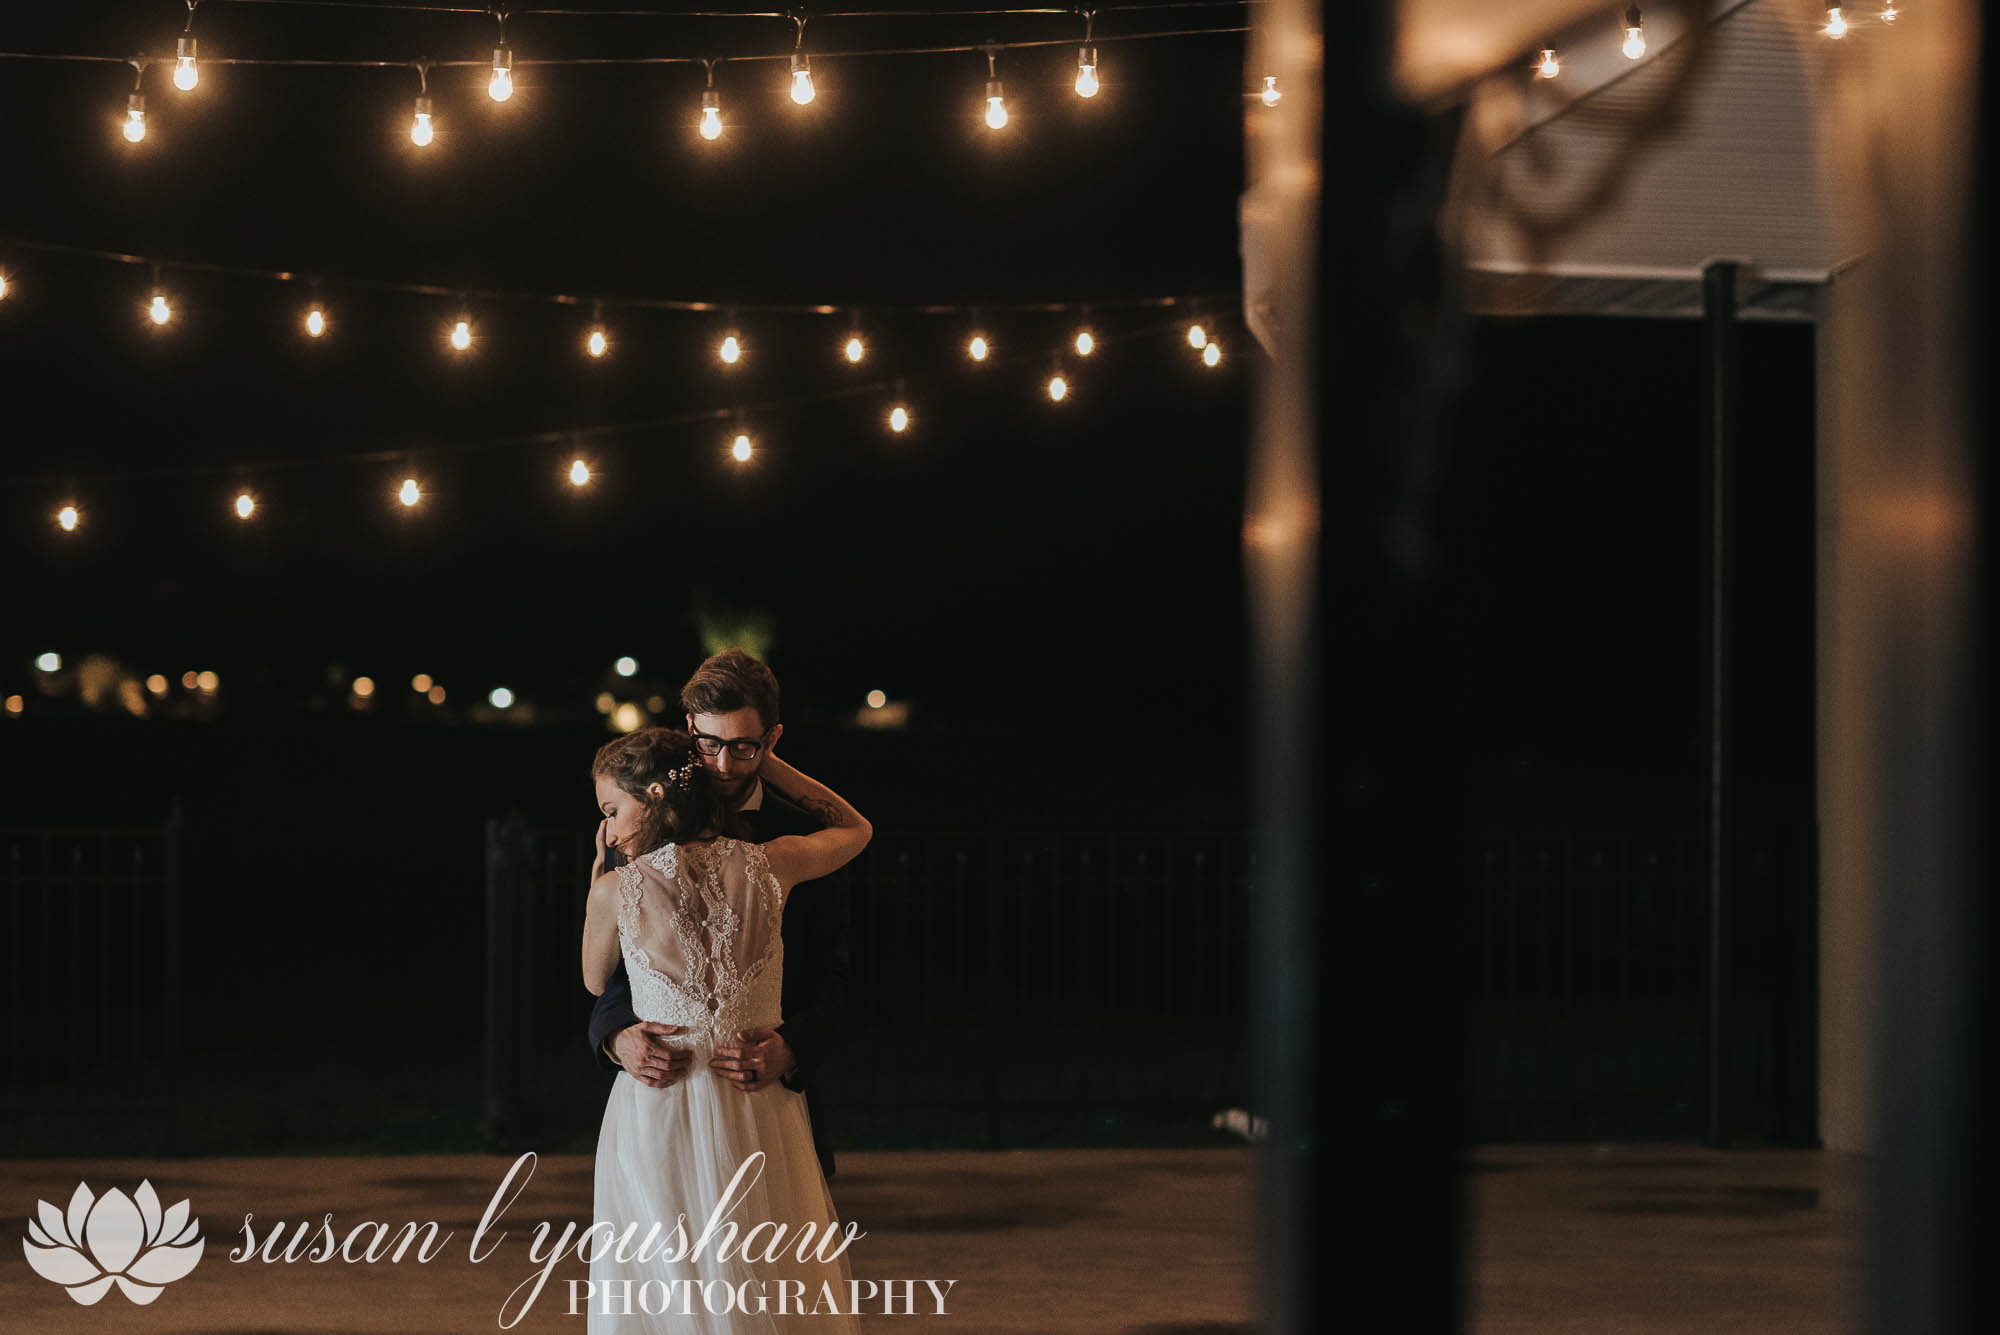 BLOG Clearidge Event Center 07-30-2018 SLY Photography LLC-49.jpg